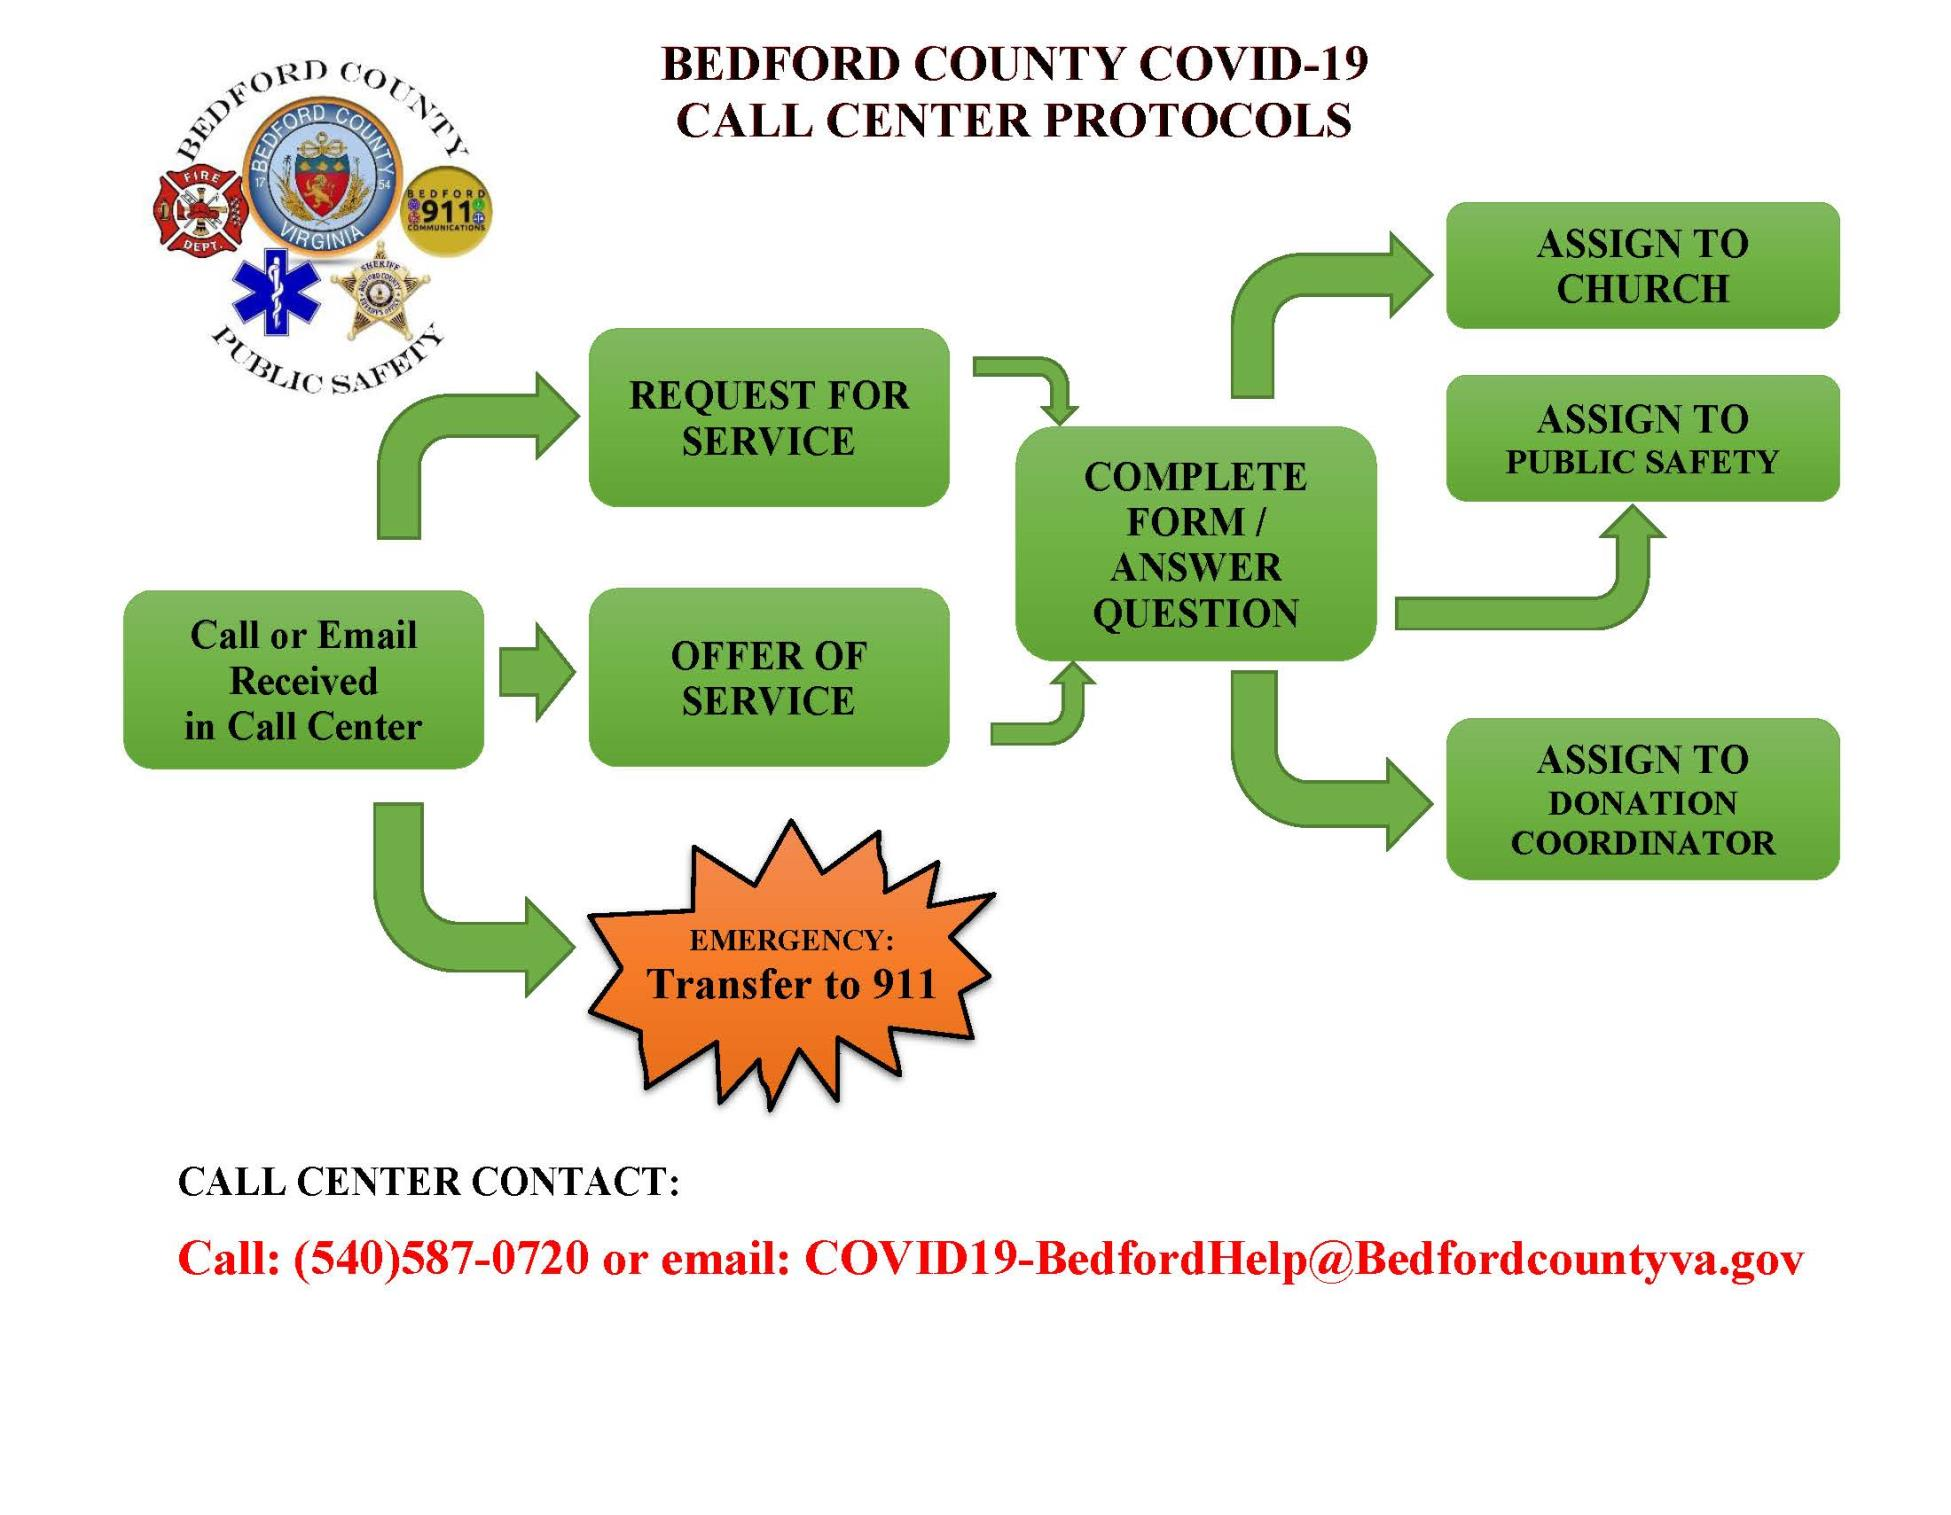 Bedford County Call Center